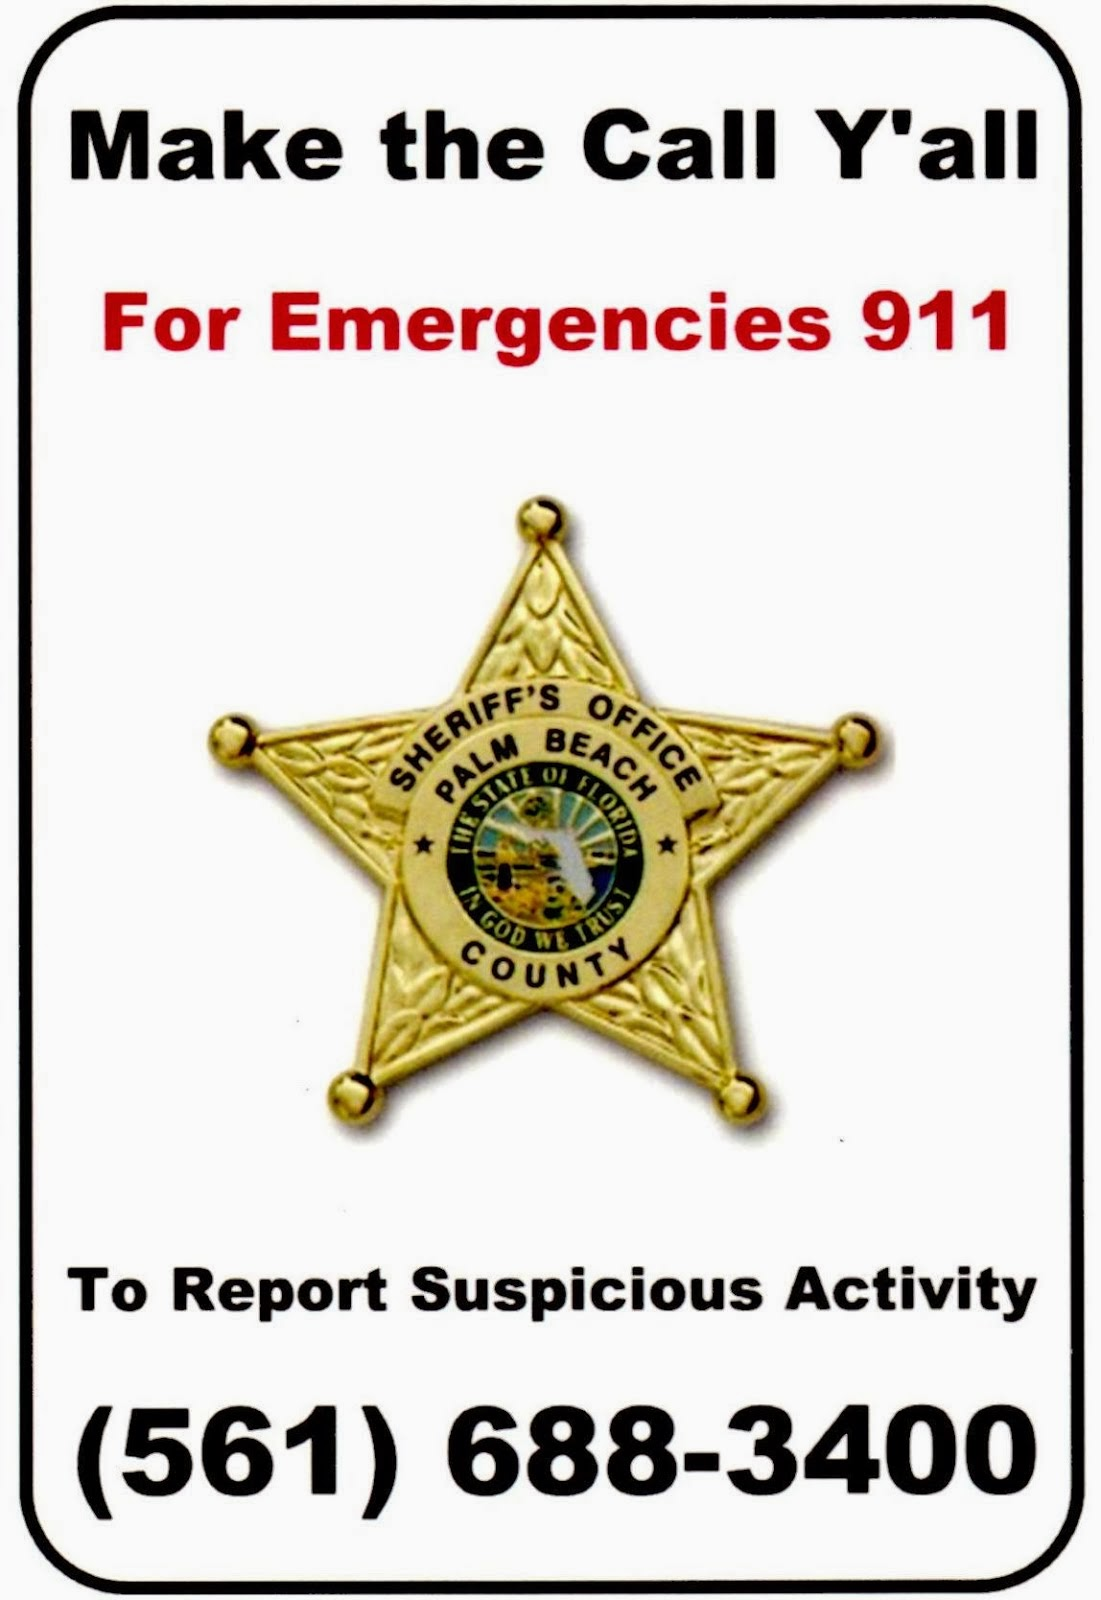 PBSO's non-emergency number below. Click on image for PBSO District 14 headquarters.